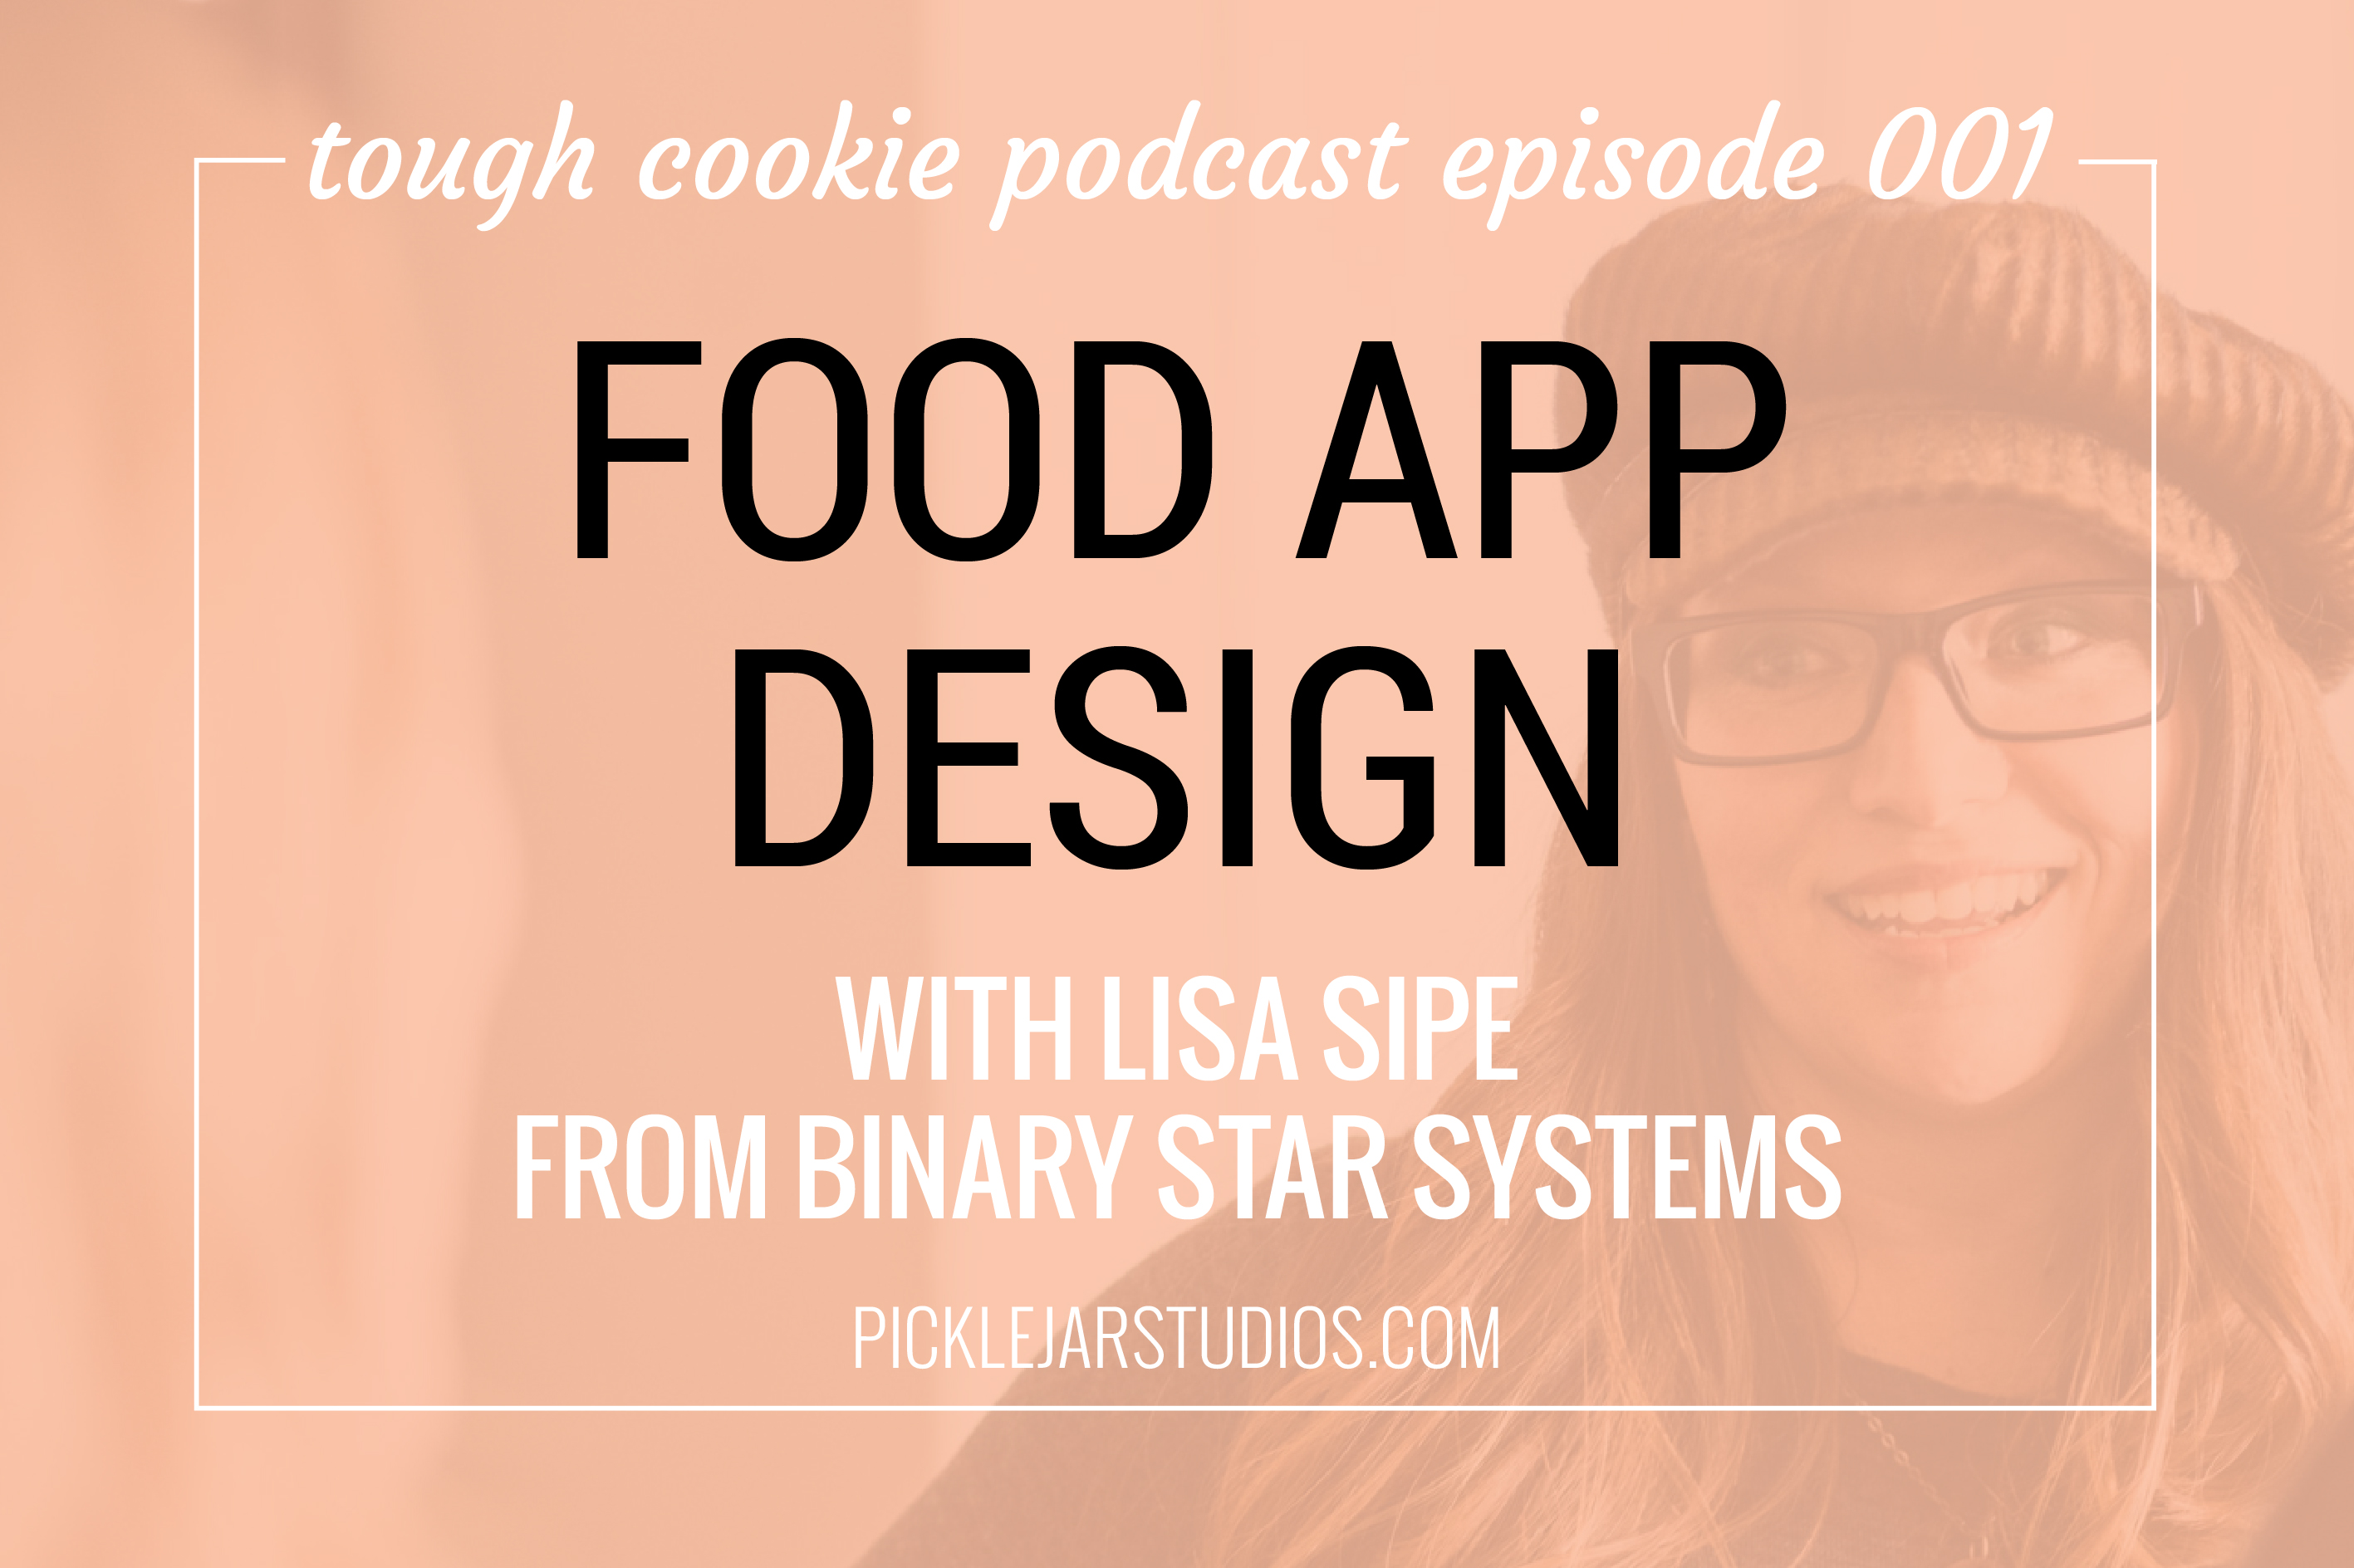 tough-cookie-podcast food app design with lisa sipe